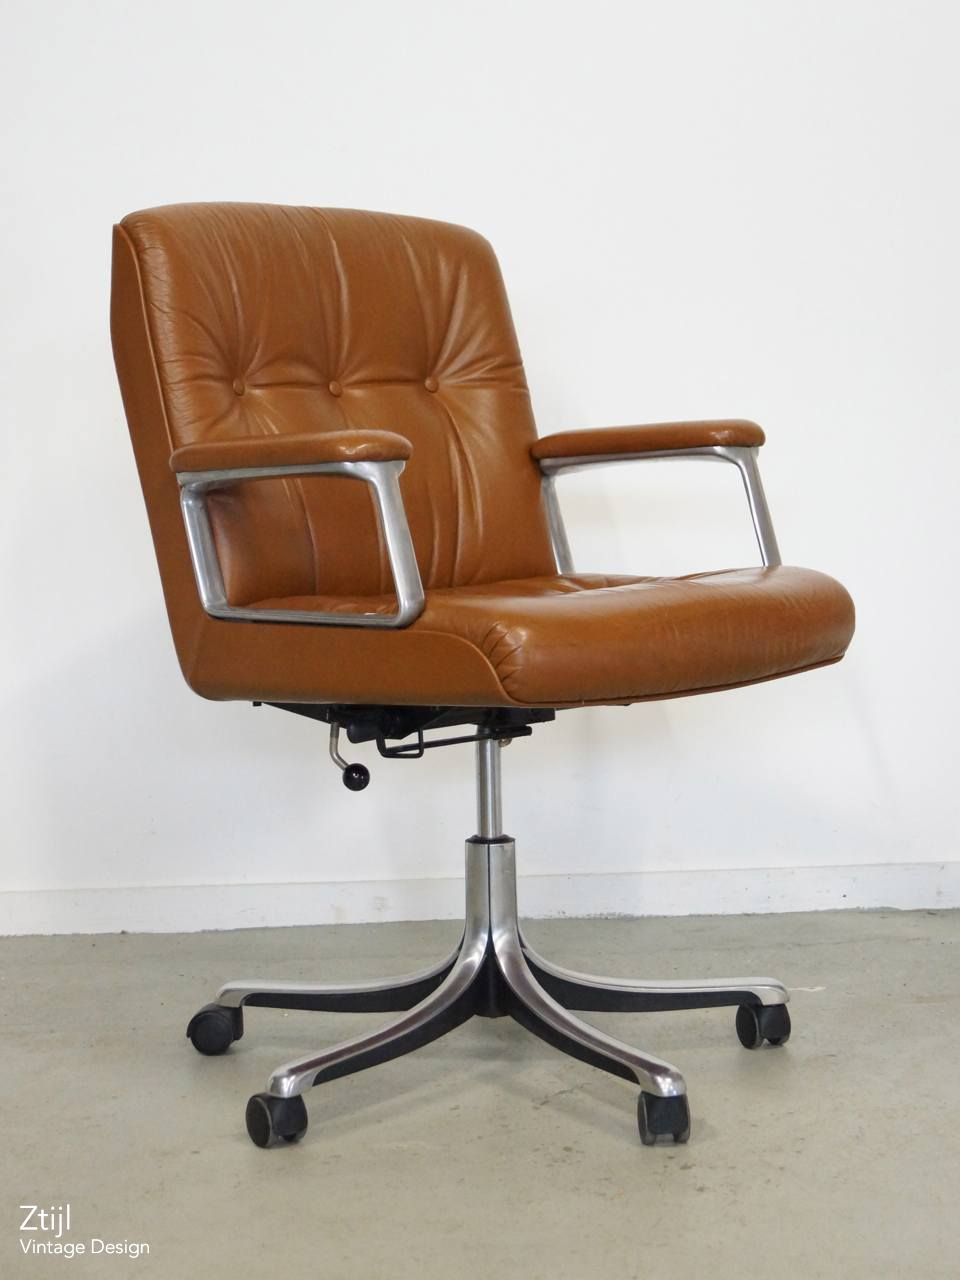 Mid Century Design Osvaldo Borsani Office Chair 70s Ztijl